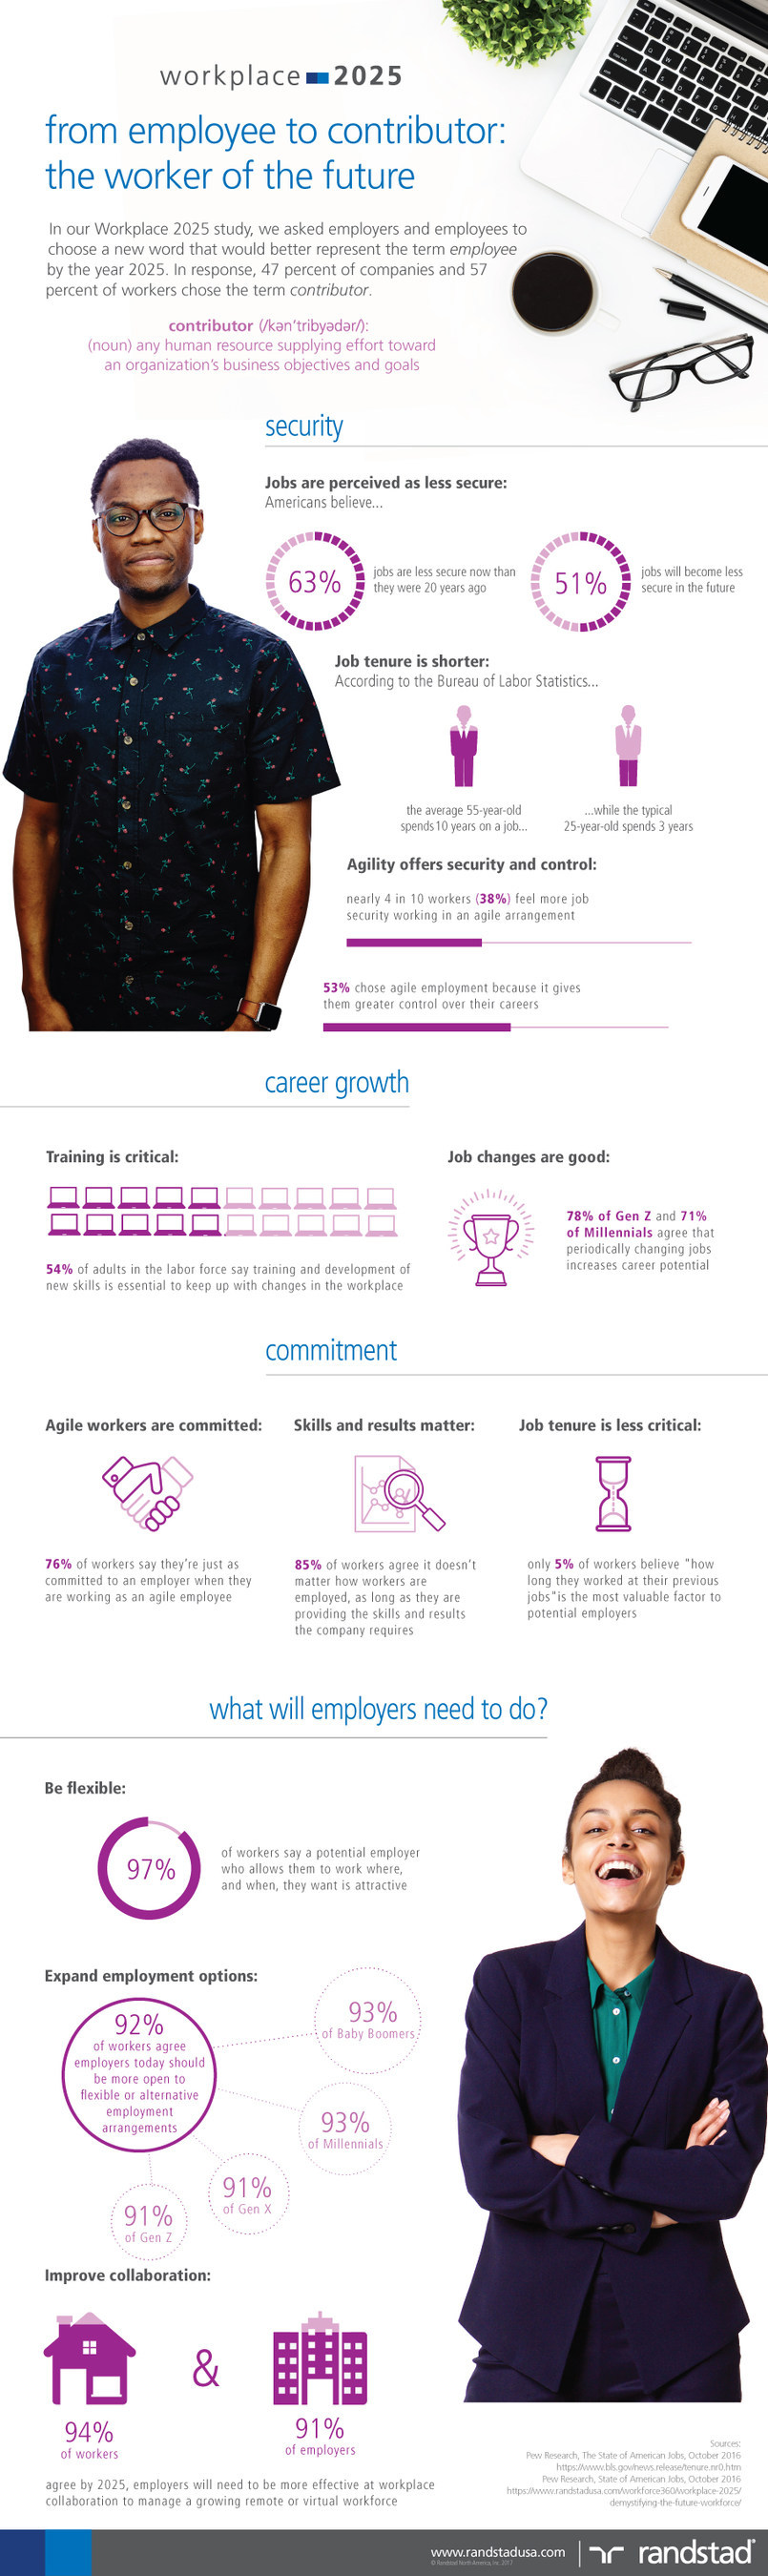 """From employee to """"contributor"""" -- The future worker redefined"""